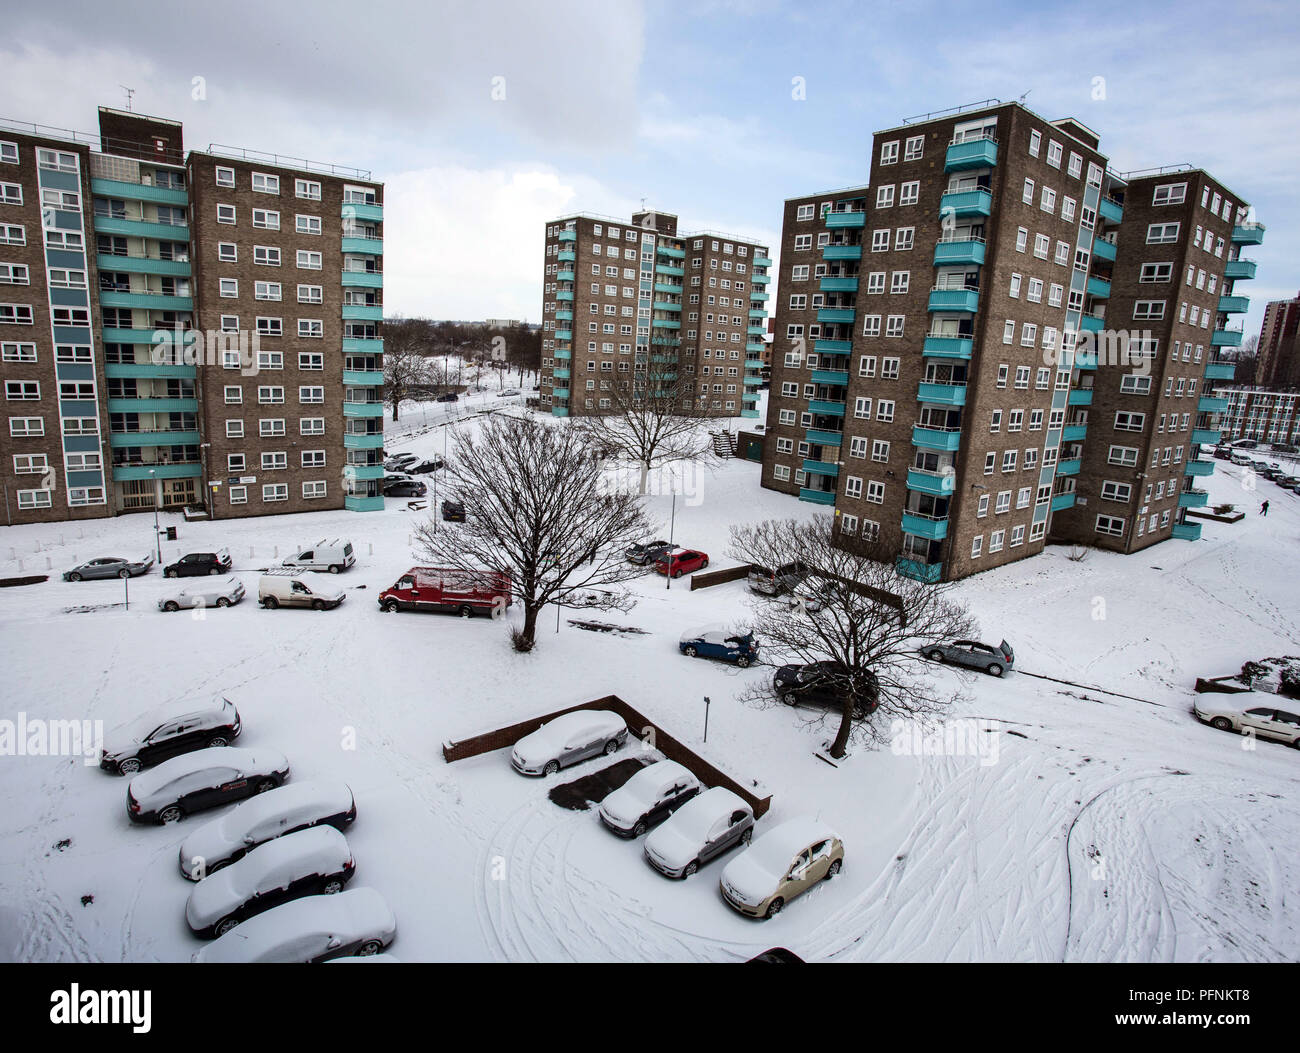 Leeds, UK. 28th Feb, 2018. Some council block of flats seen during the snowy winter in Leeds.Social housingis a method ofhousing tenurein which the home is possessed by a local authority, which may be central or local, Social housingis a rental housing which may be owned and ran by the state, by non-profit organizations, or by a combination of the two, usually with the purpose of deliveringaffordable housing. Social housing can also be perceived as a potential solution tohousing inequality. Credit: Rahman Hassani/SOPA Images/ZUMA Wire/Alamy Live News Stock Photo